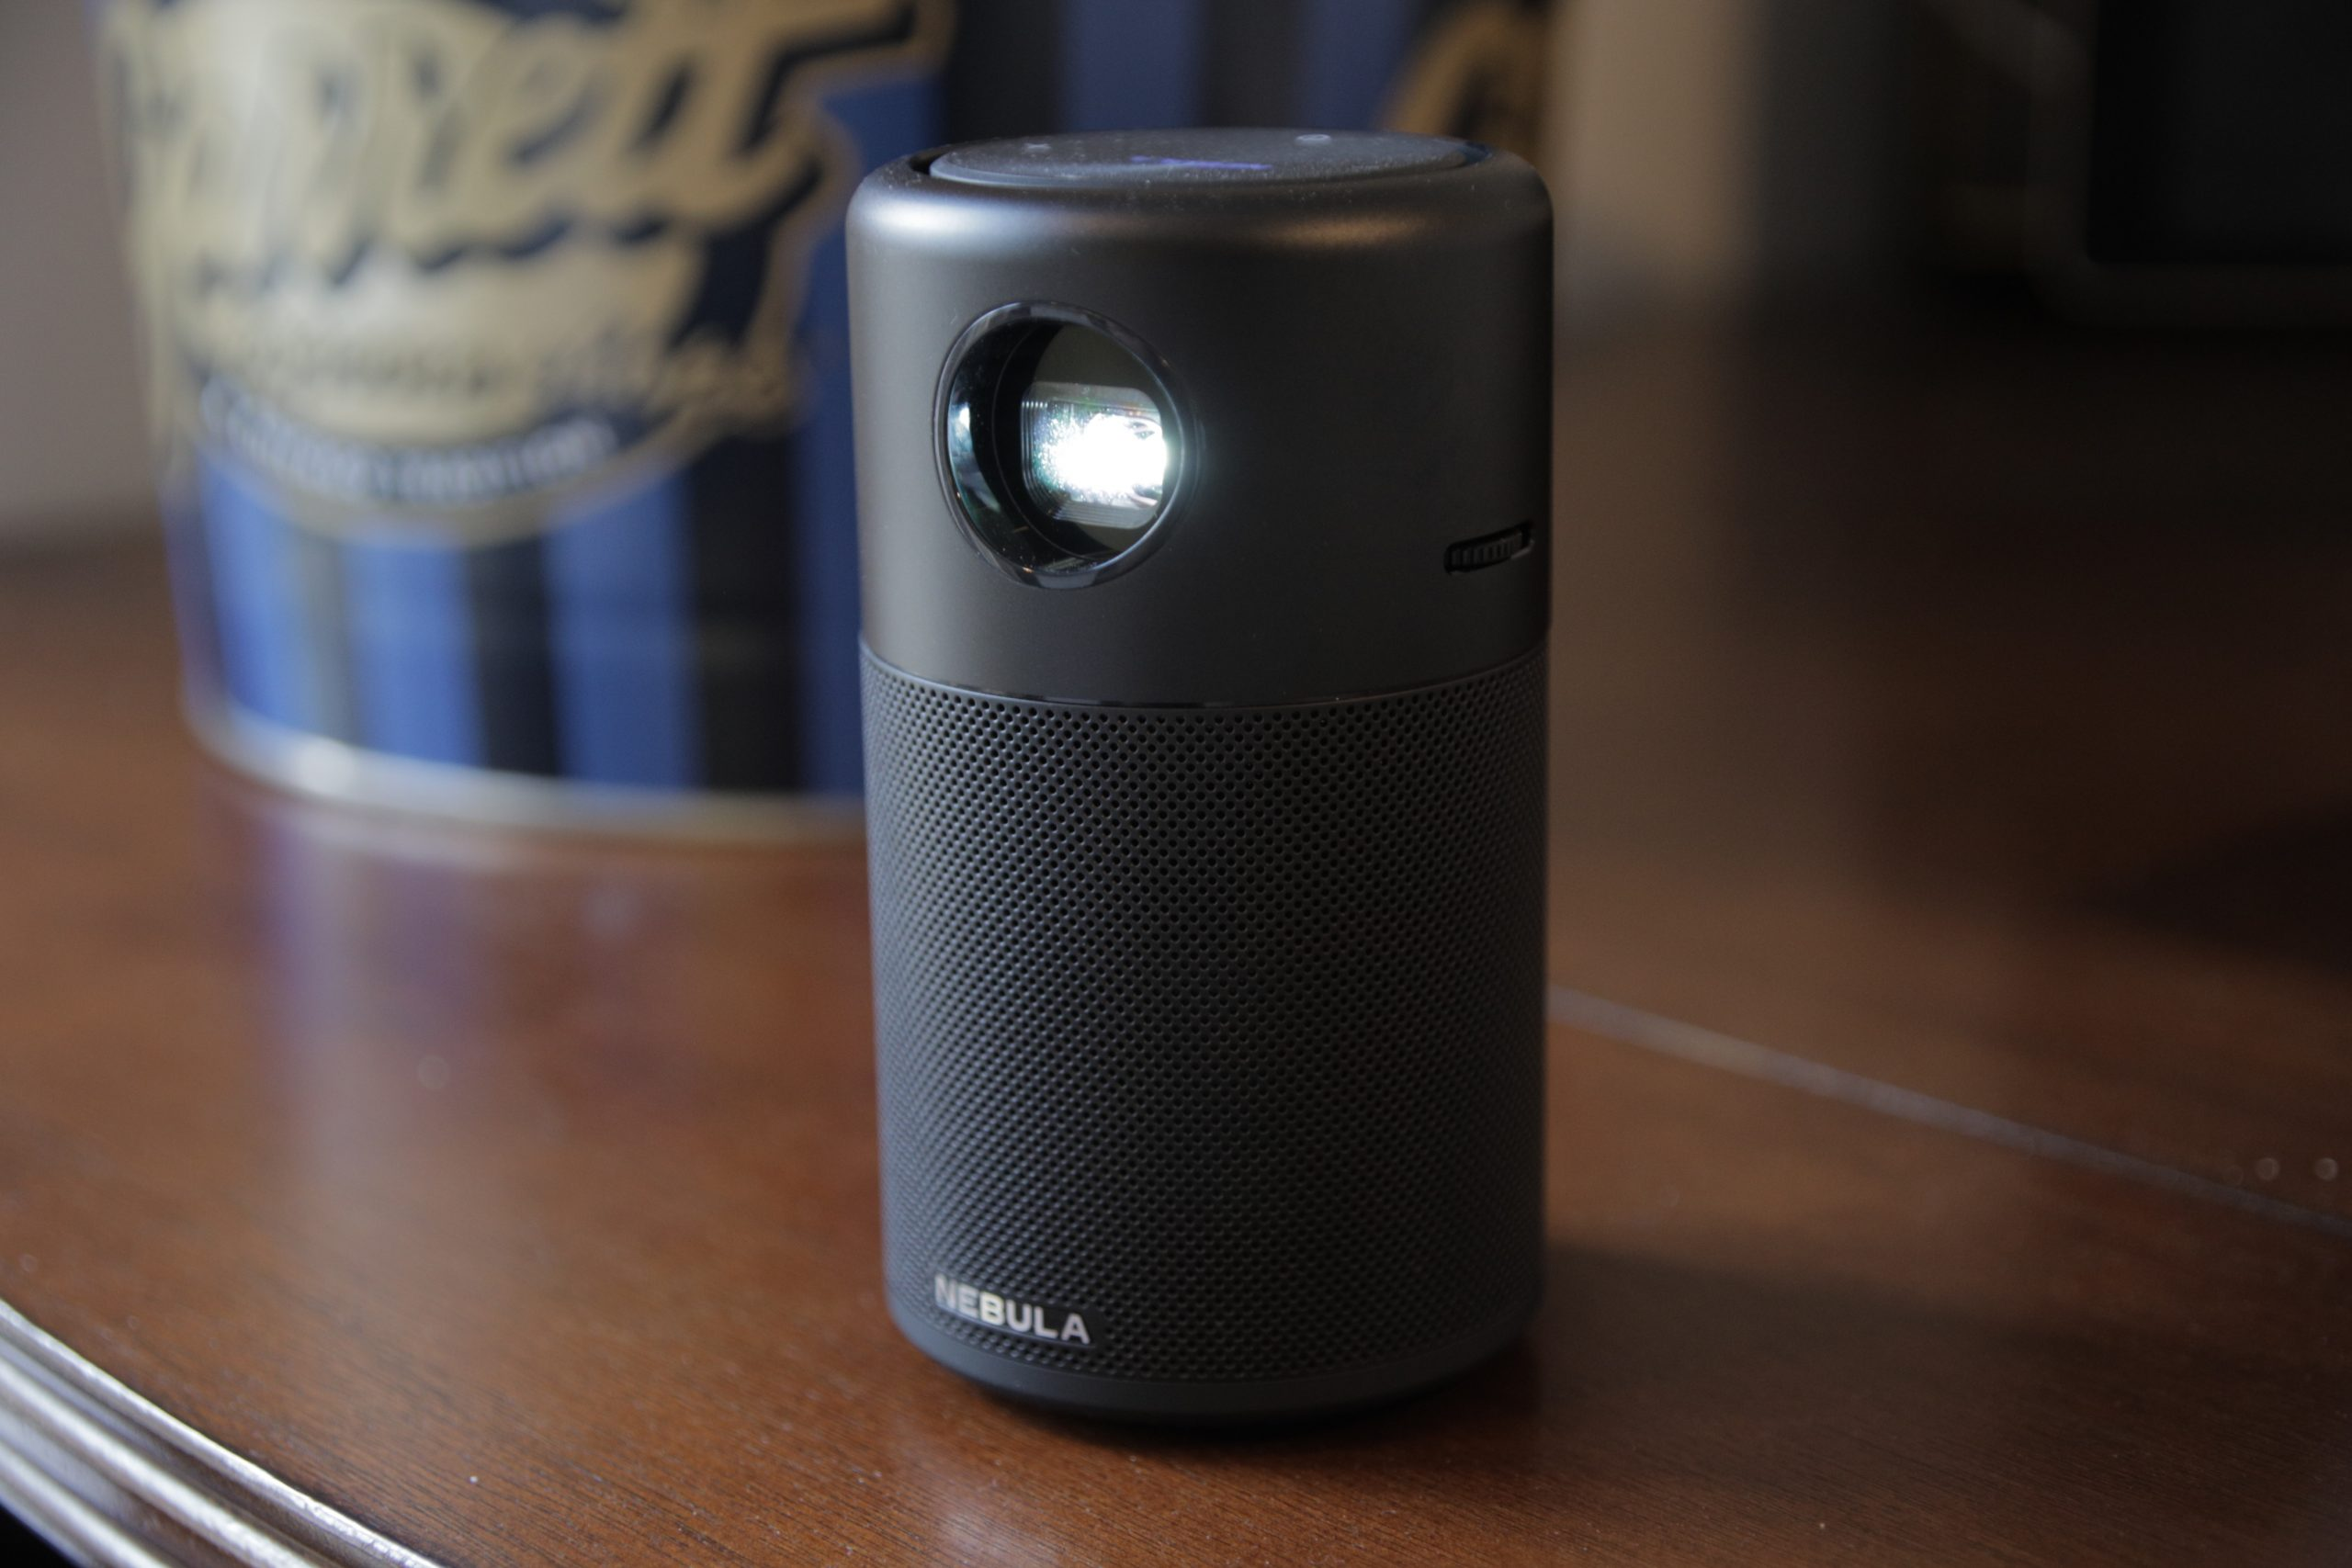 A Great Portable Projector For Your Entertainment Needs